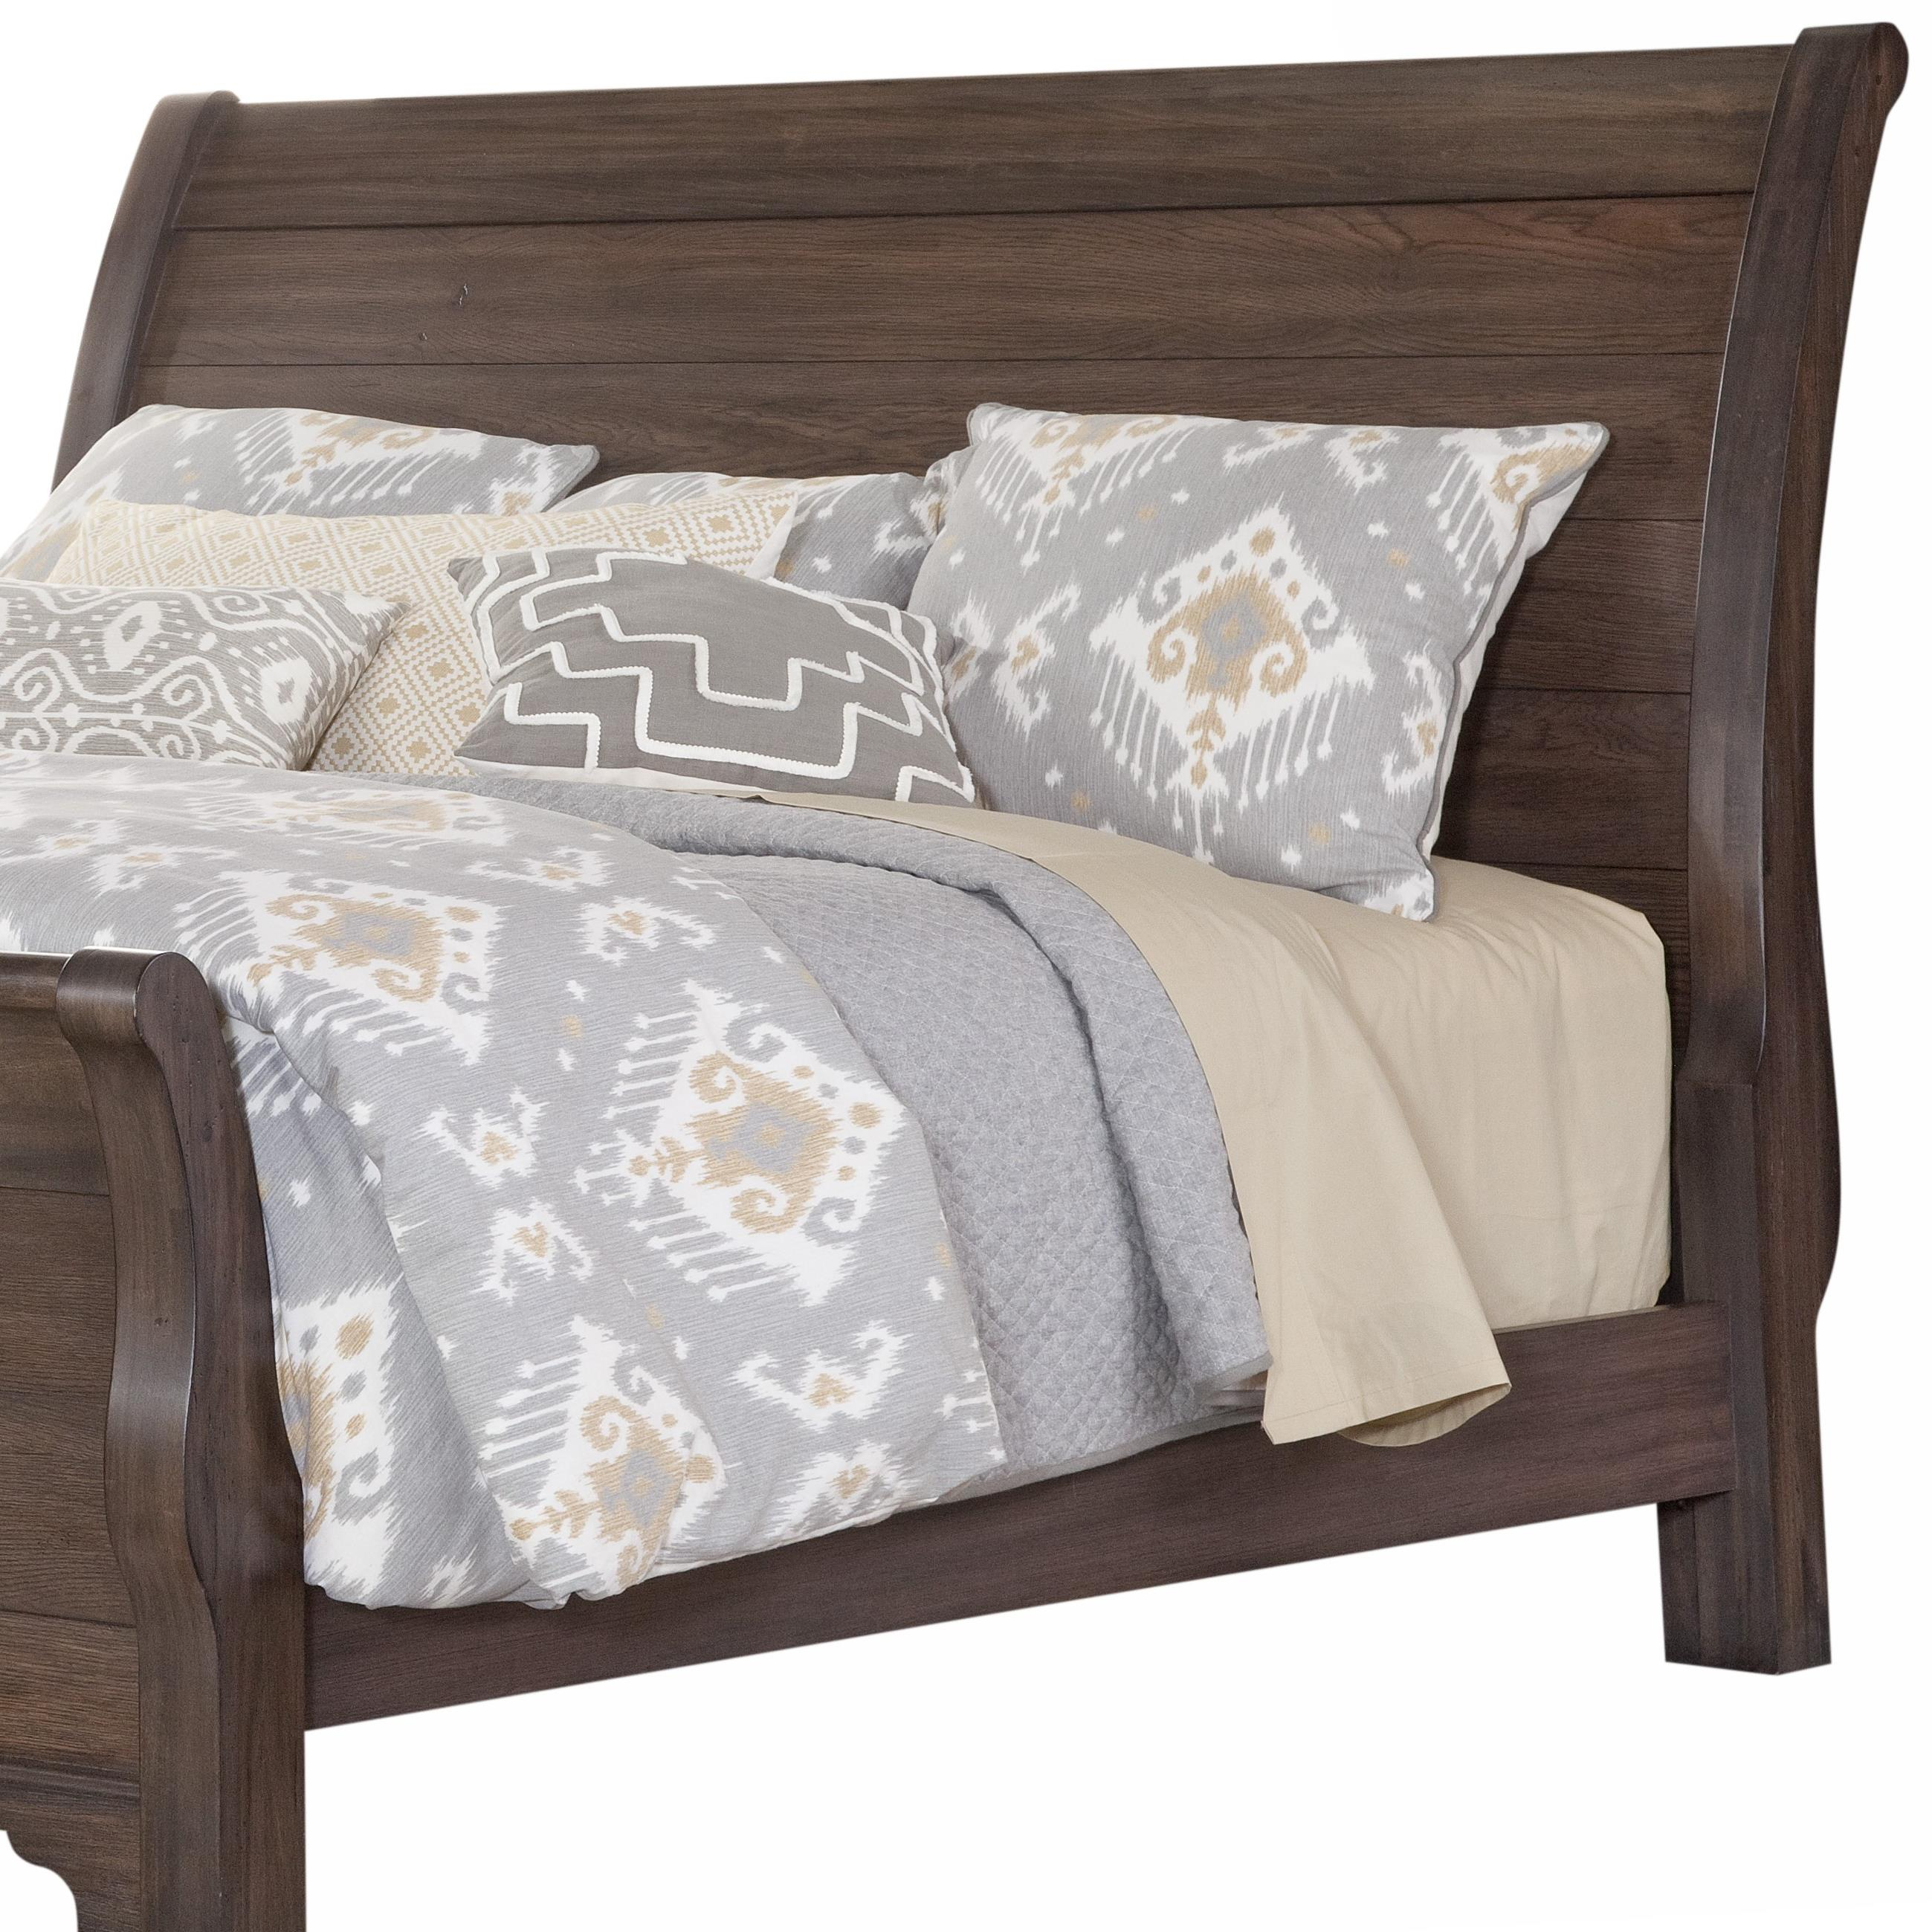 Vaughan Bassett Whiskey Barrel King Sleigh Headboard - Item Number: 816-663